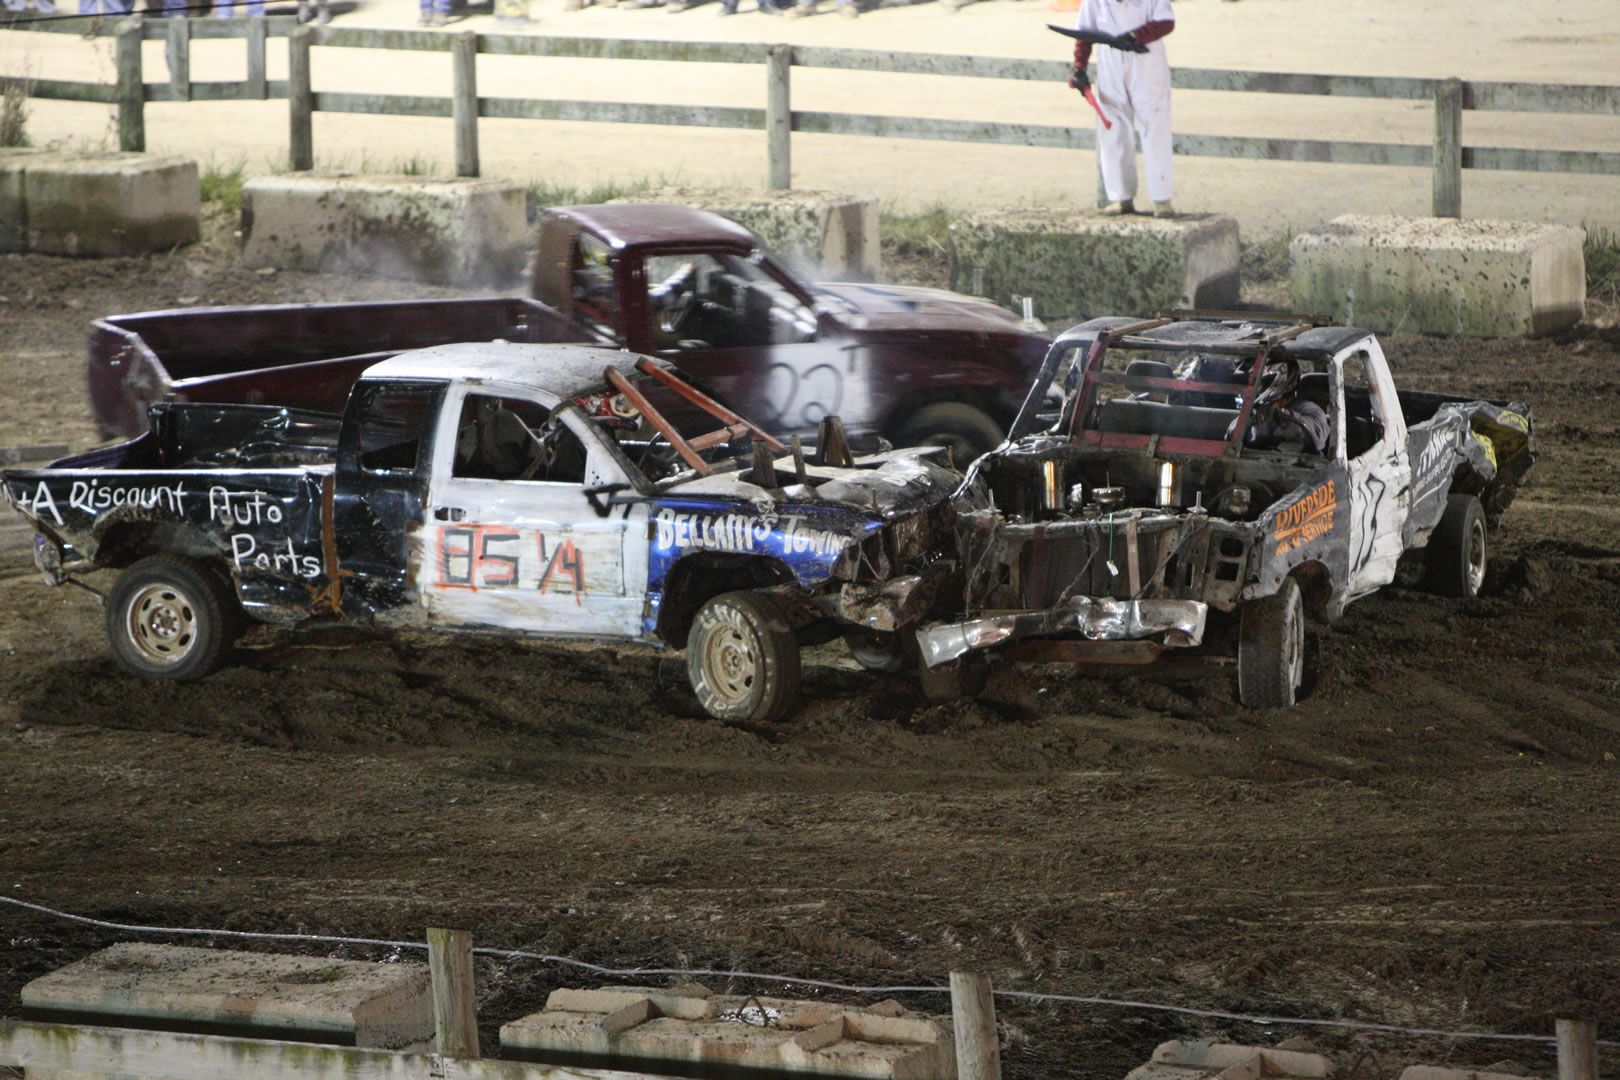 markhamfair demolition derby cars